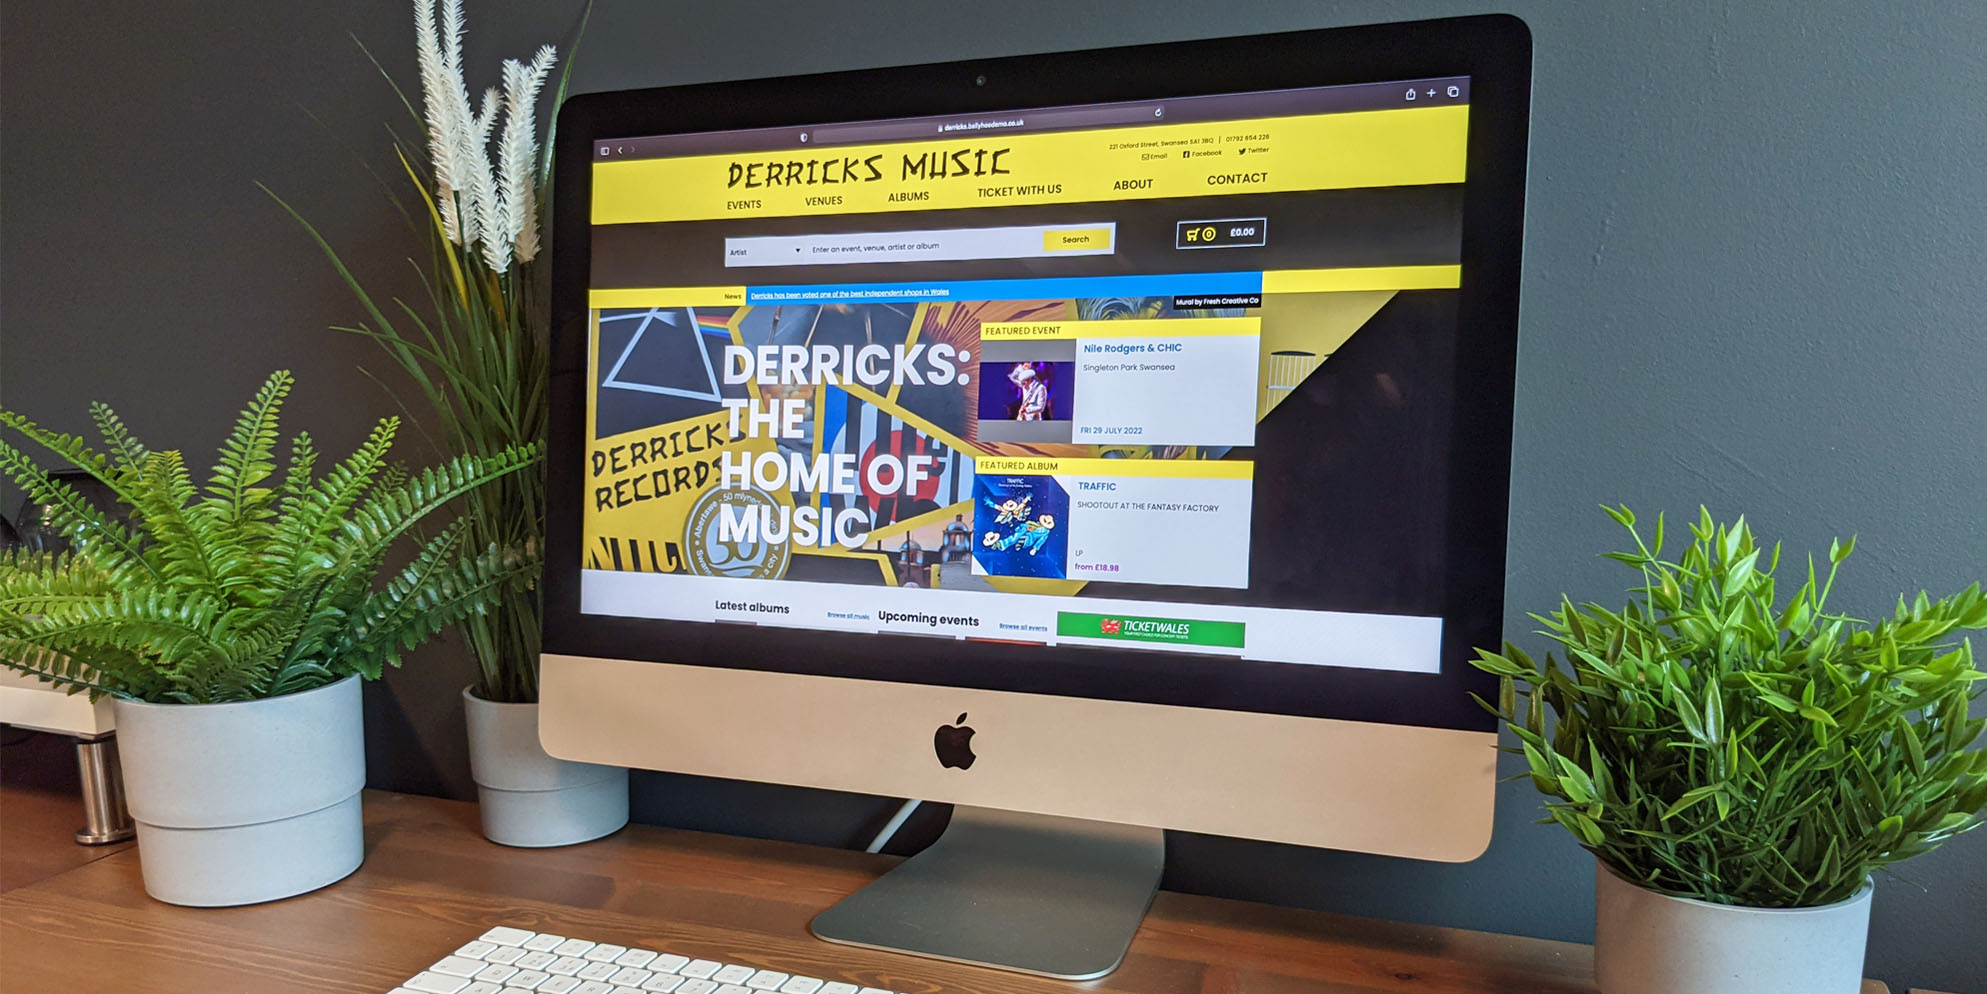 Swansea's Oldest Record Store Derricks Music Launches New Website Developed by Ballyhoo